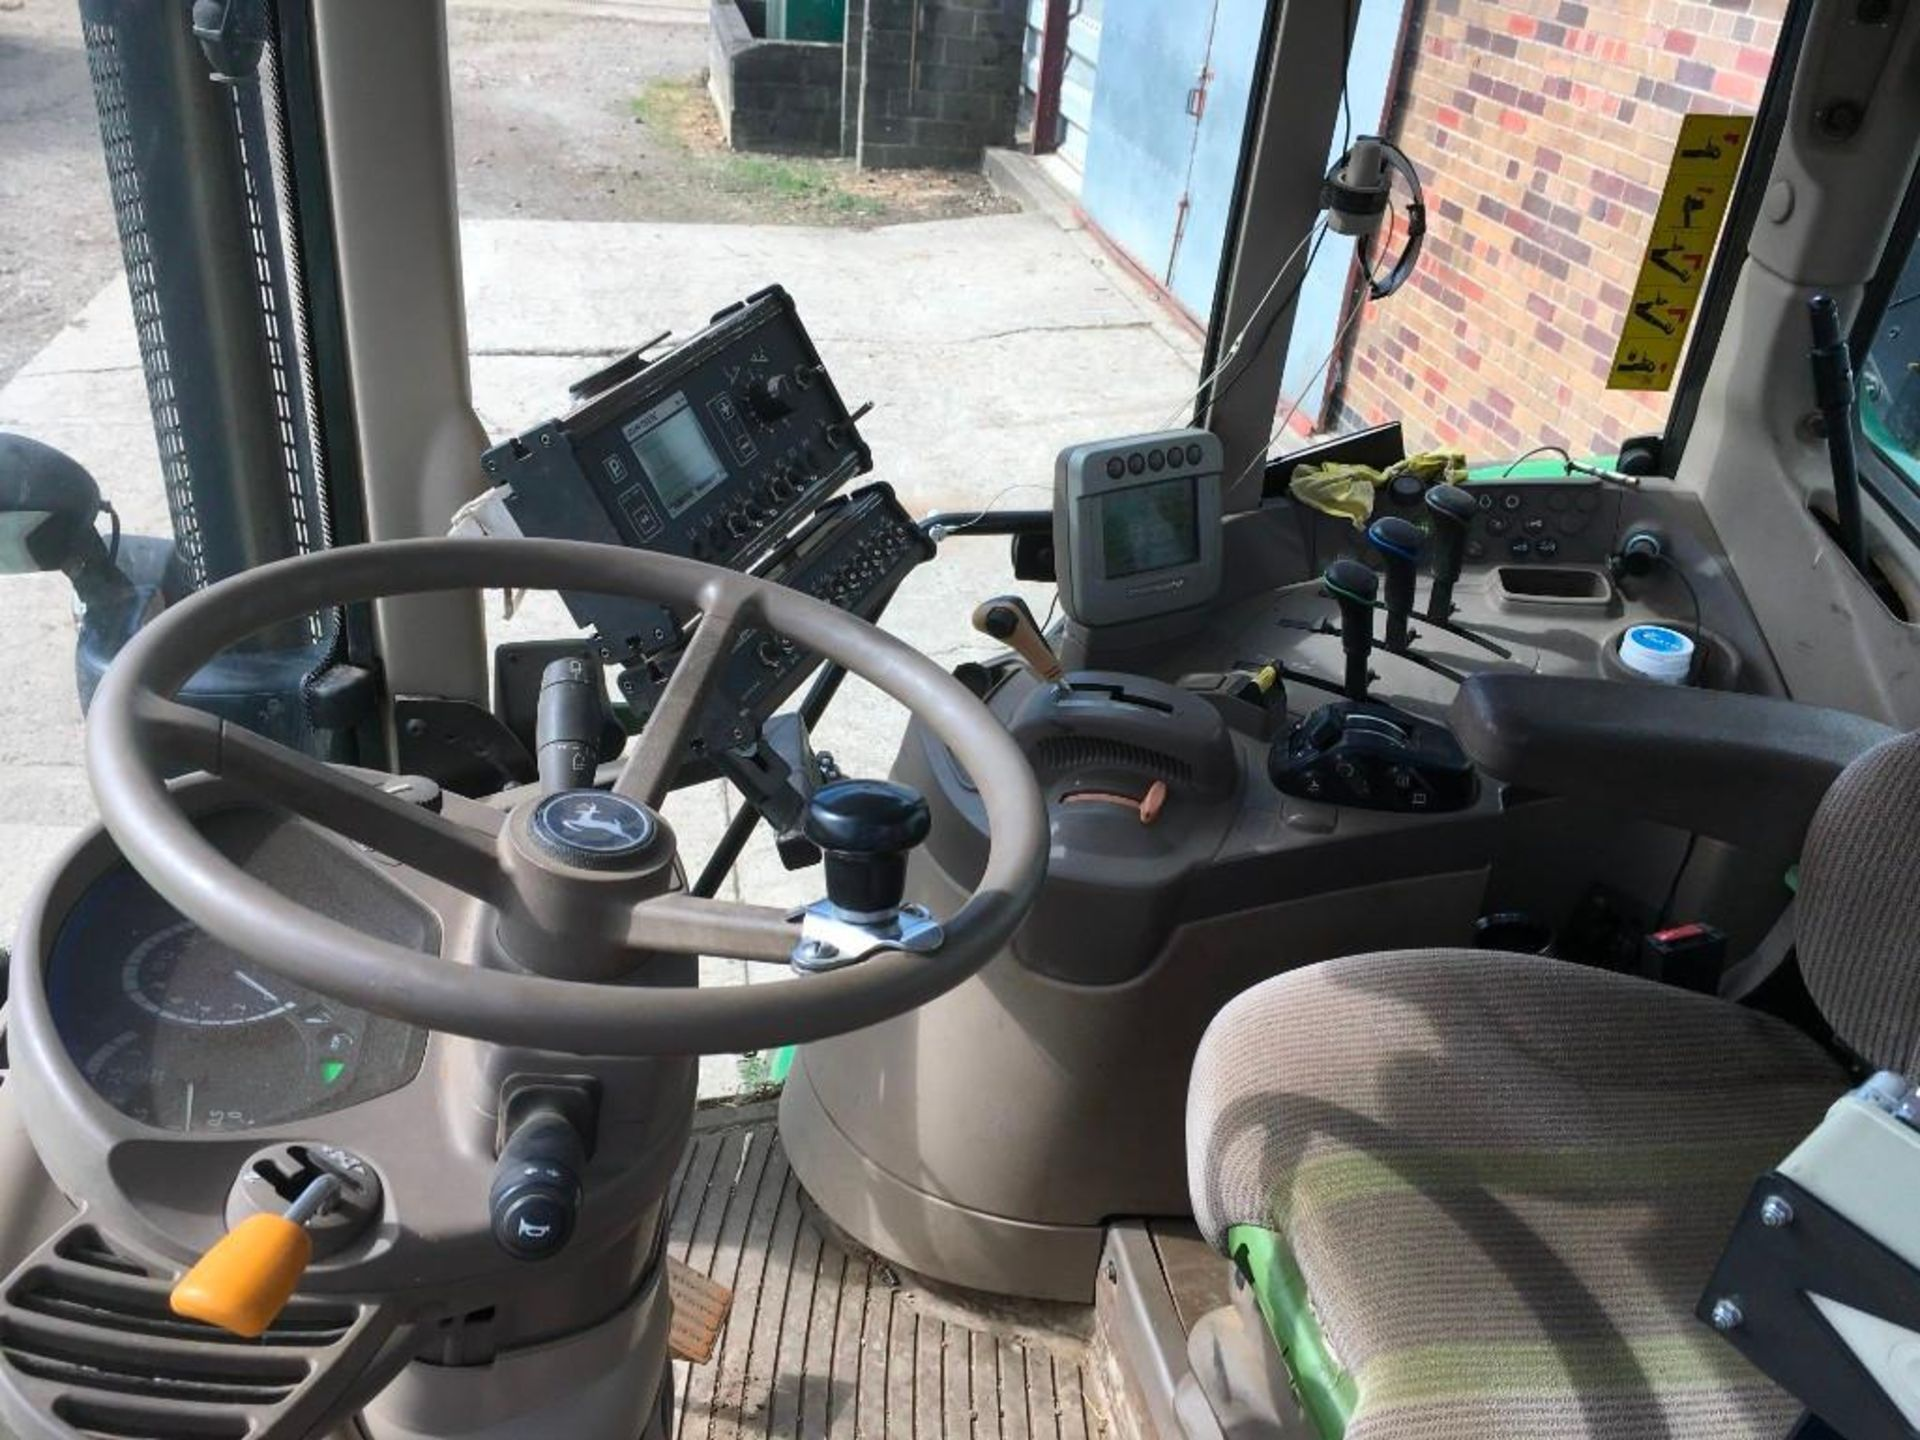 2008 John Deere 7530 tractor with auto quad gear box, 4 spool valves, pick up hitch, air seat, front - Image 13 of 14